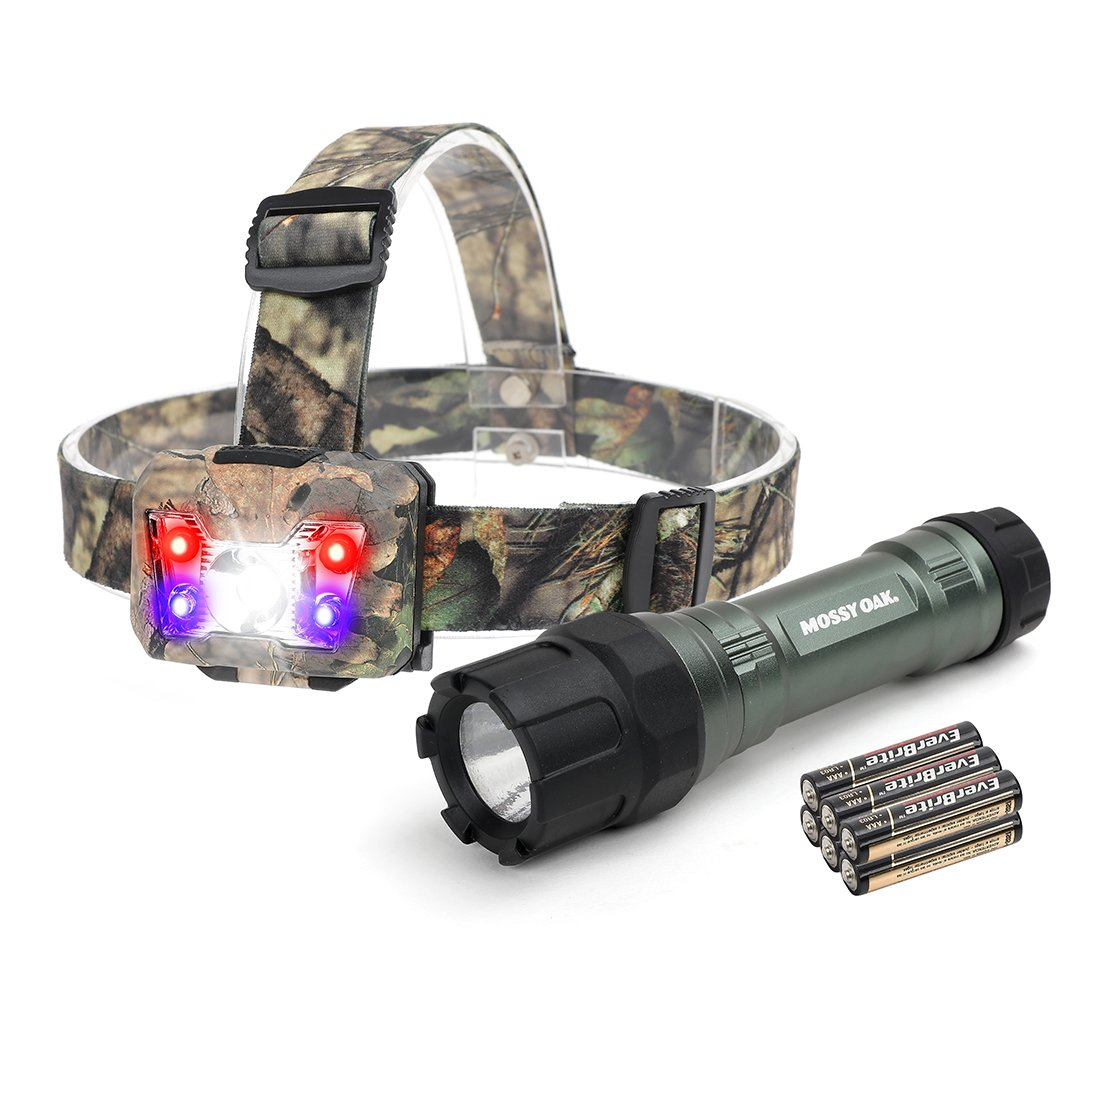 MOSSY OAK Tactical LED Flashlight Shock-proof 500 Lumens and Headlamp 300 Lumens, Battery Powered Helmet Light Combo Kit for Camping, Running, Hiking and Reading, 6 AAA Alkaline Batteries Included by Mossy Oak